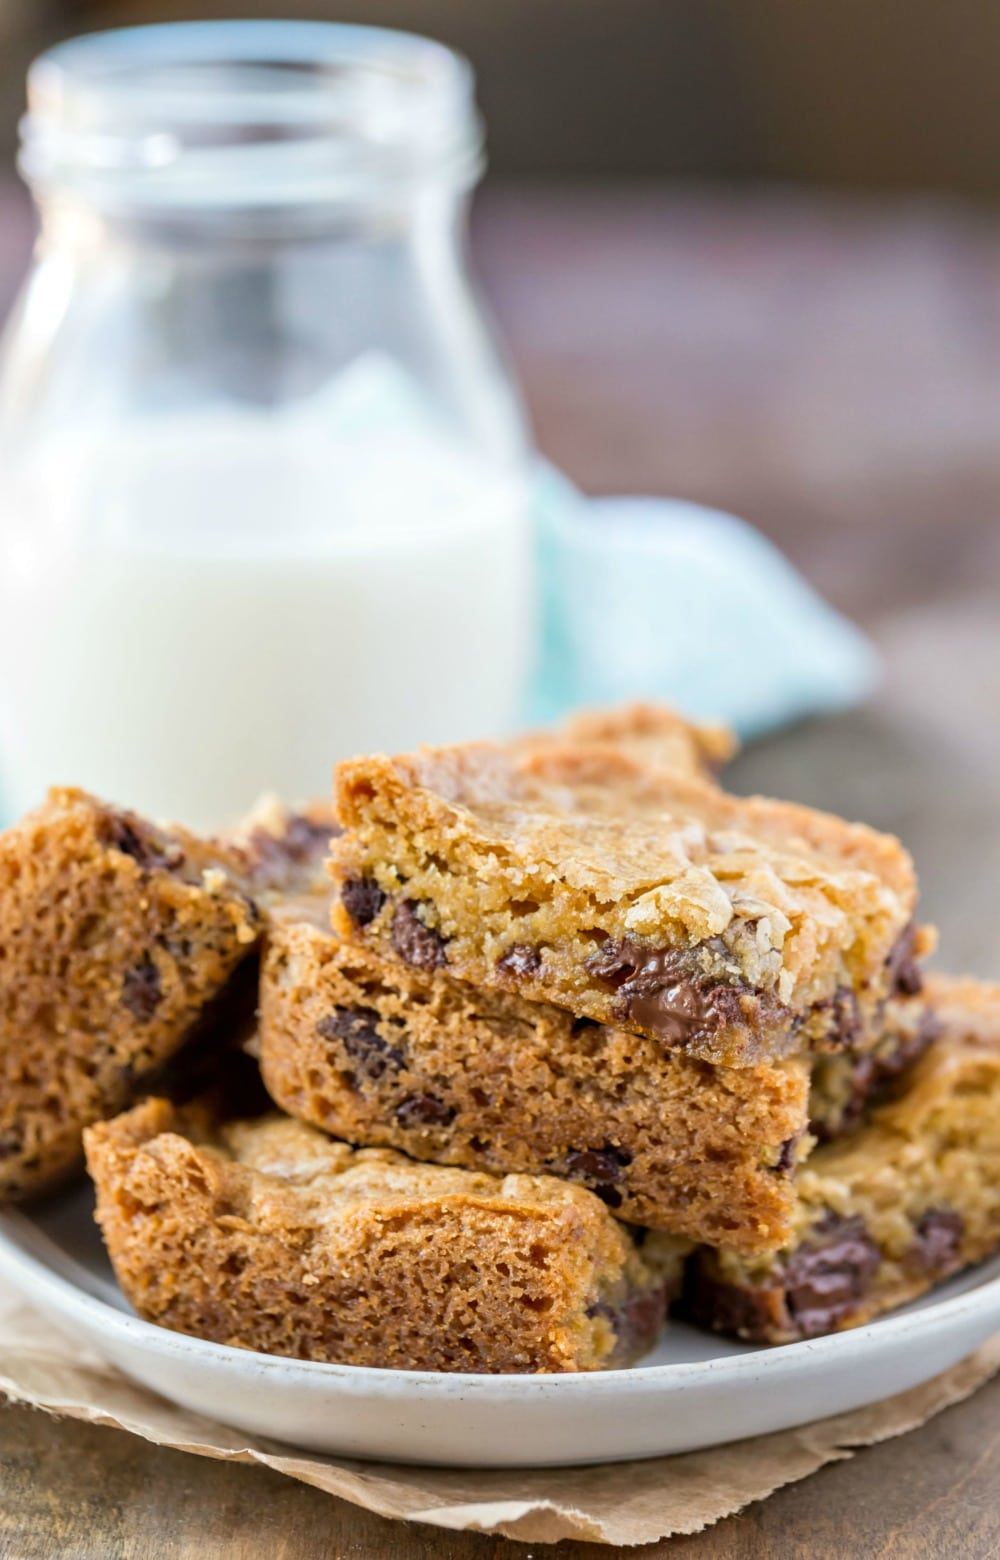 Stack of chewy chocolate chip cookie bars on a white plate next to a glass of milk